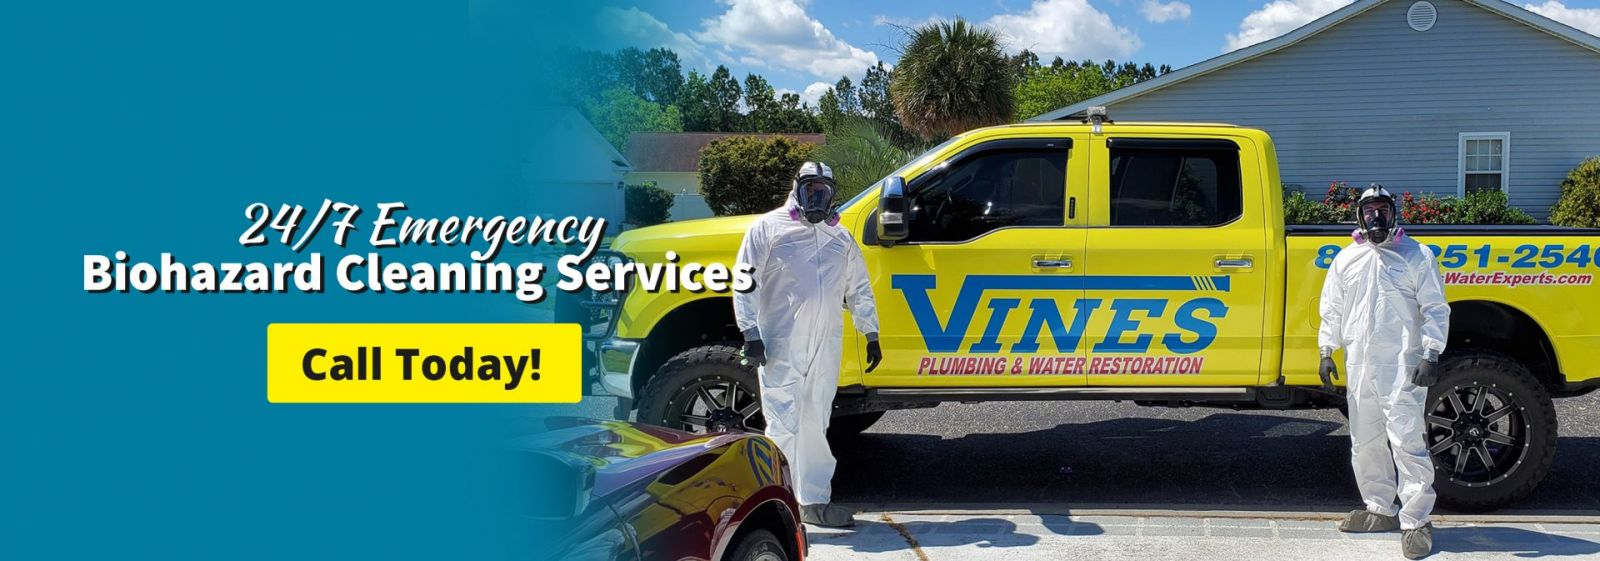 24/7 Emergency Biohazard Cleaning Services